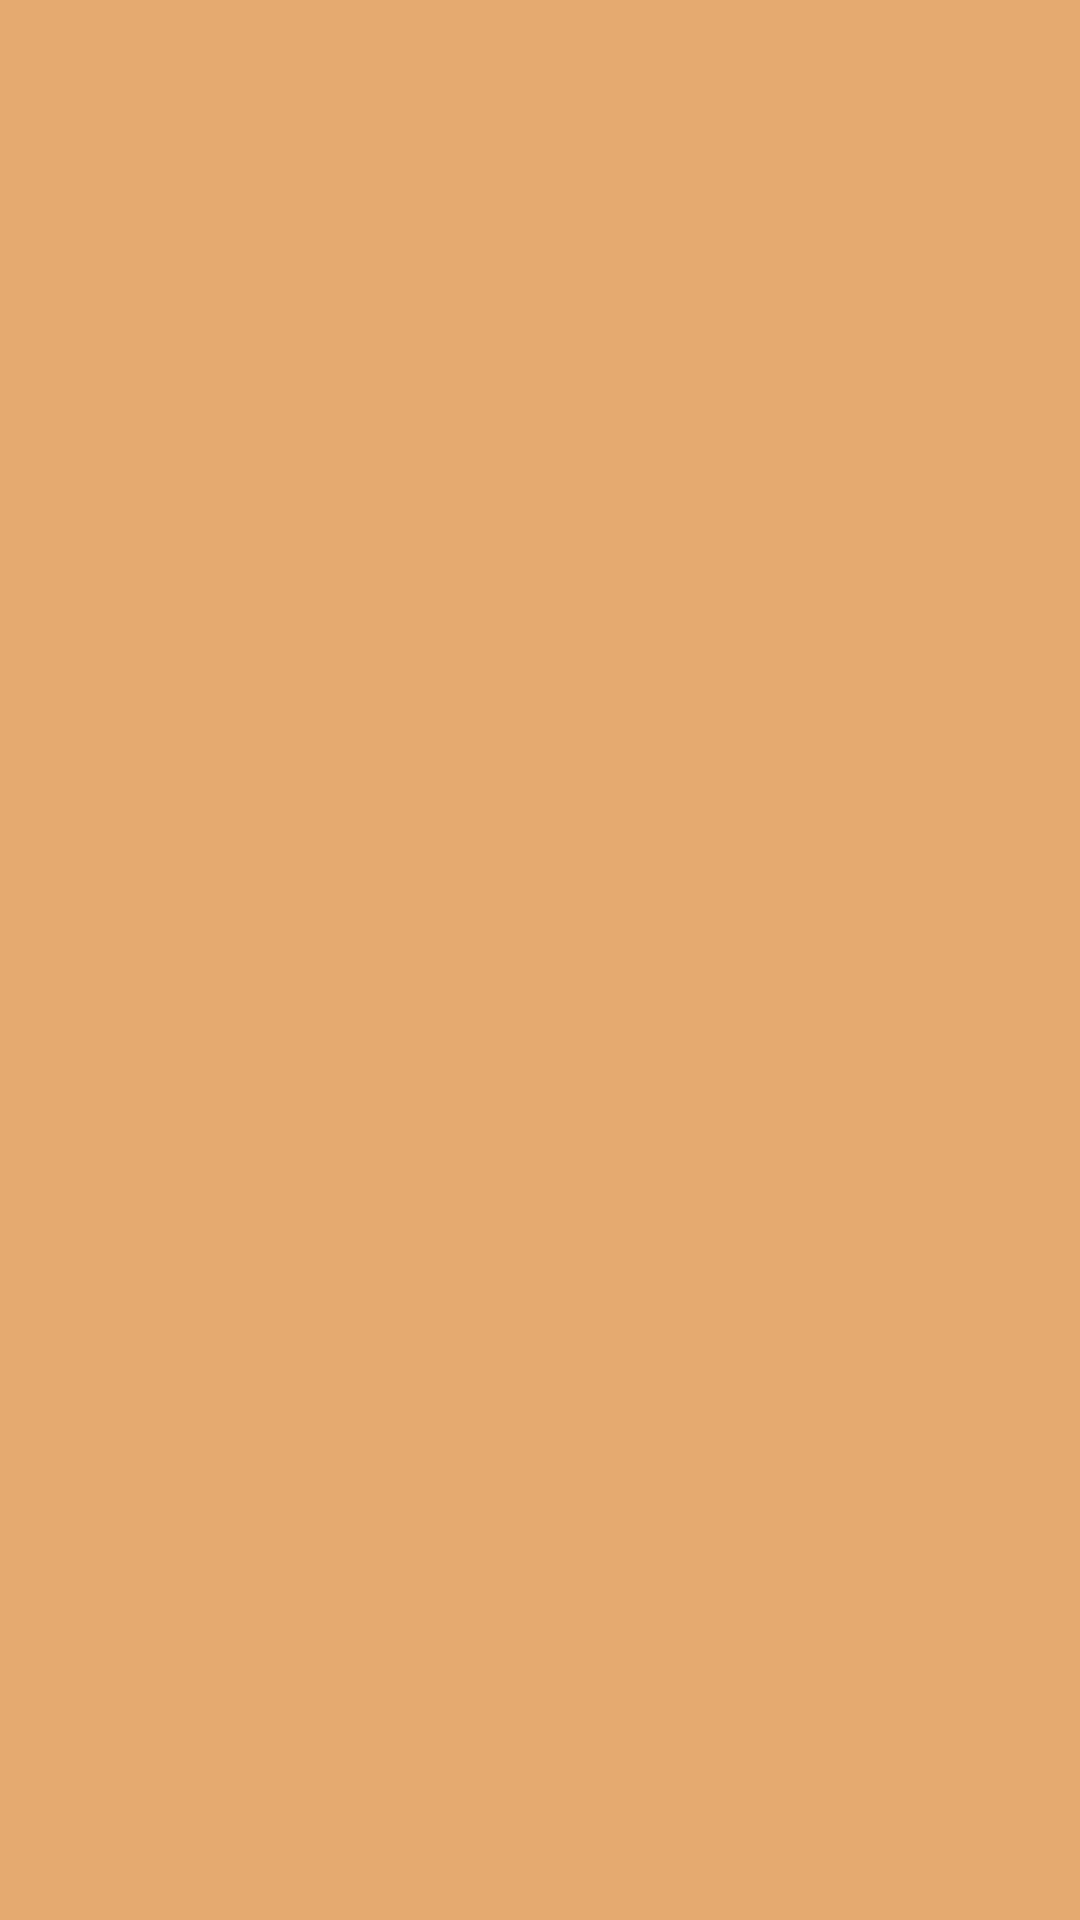 1080x1920 Fawn Solid Color Background